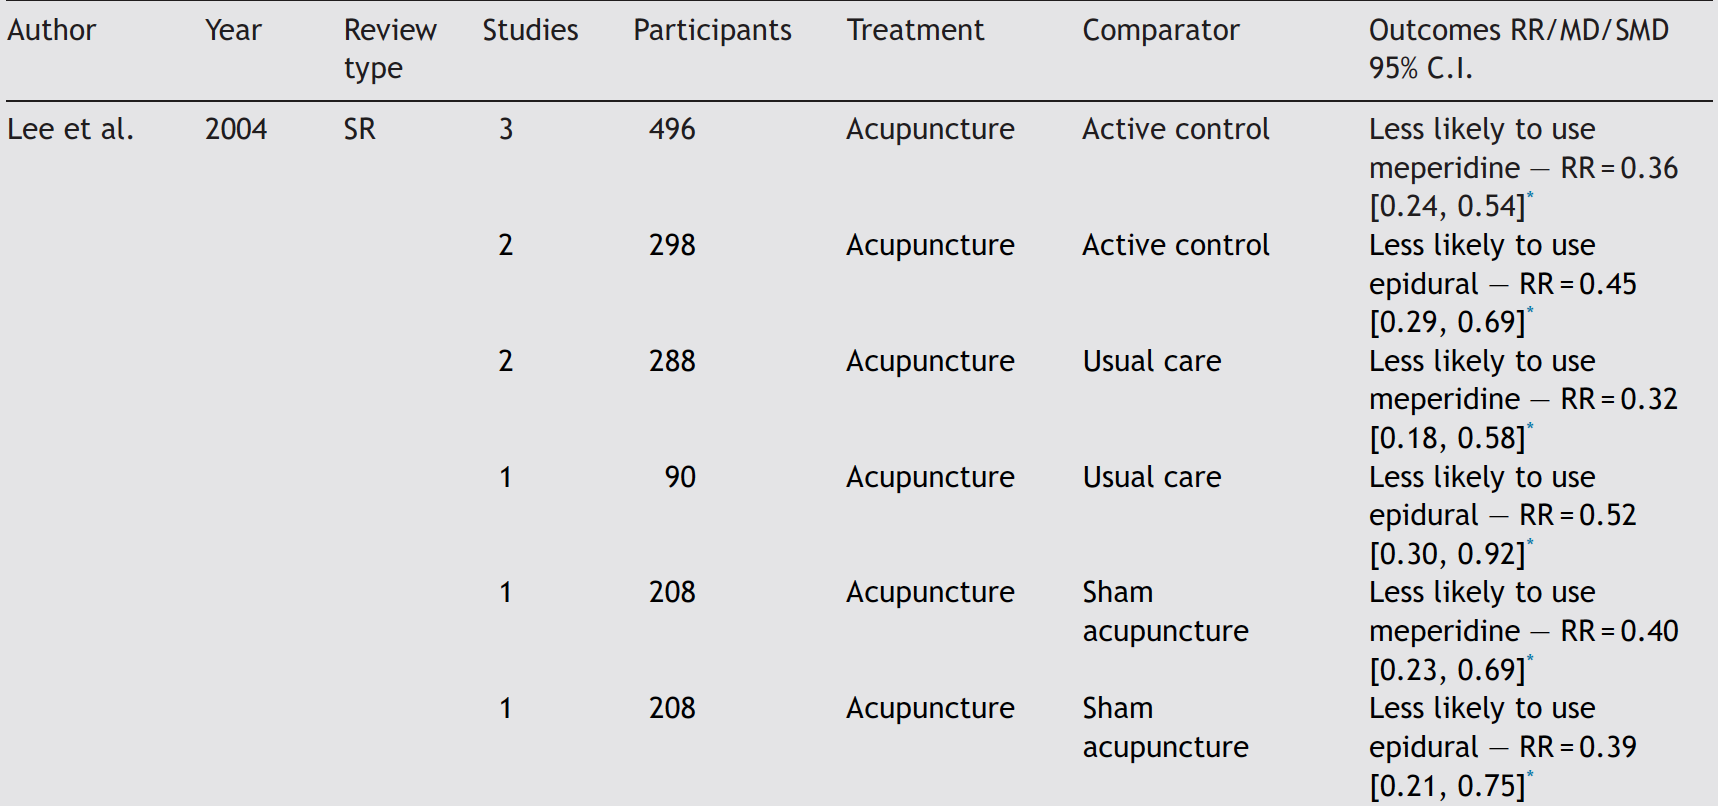 11-Acupuncture or acupressure for pain management in labour.